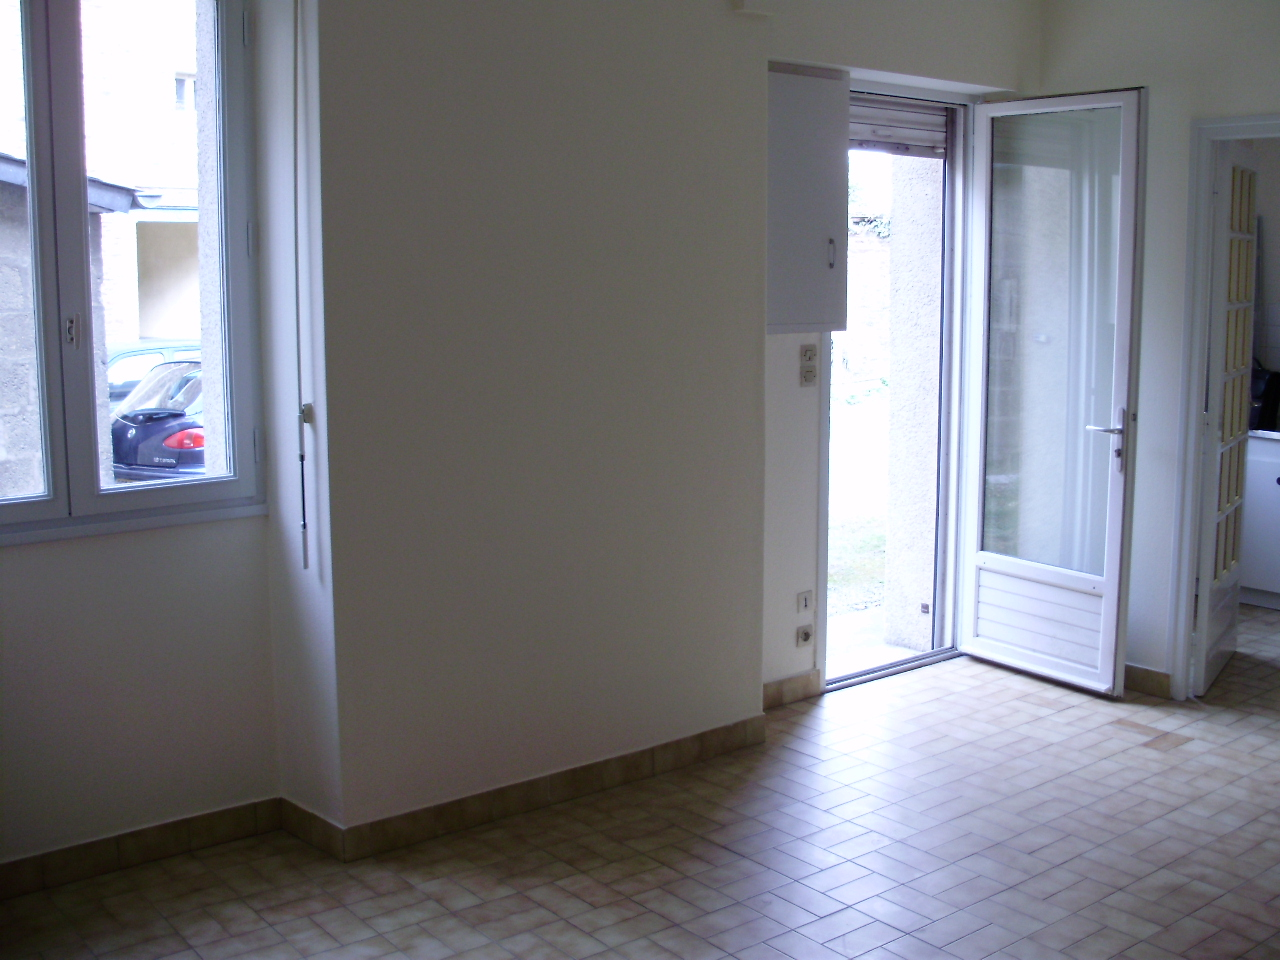 Locations appartement rennes arsenal redon avec saint for Location appartement atypique rennes